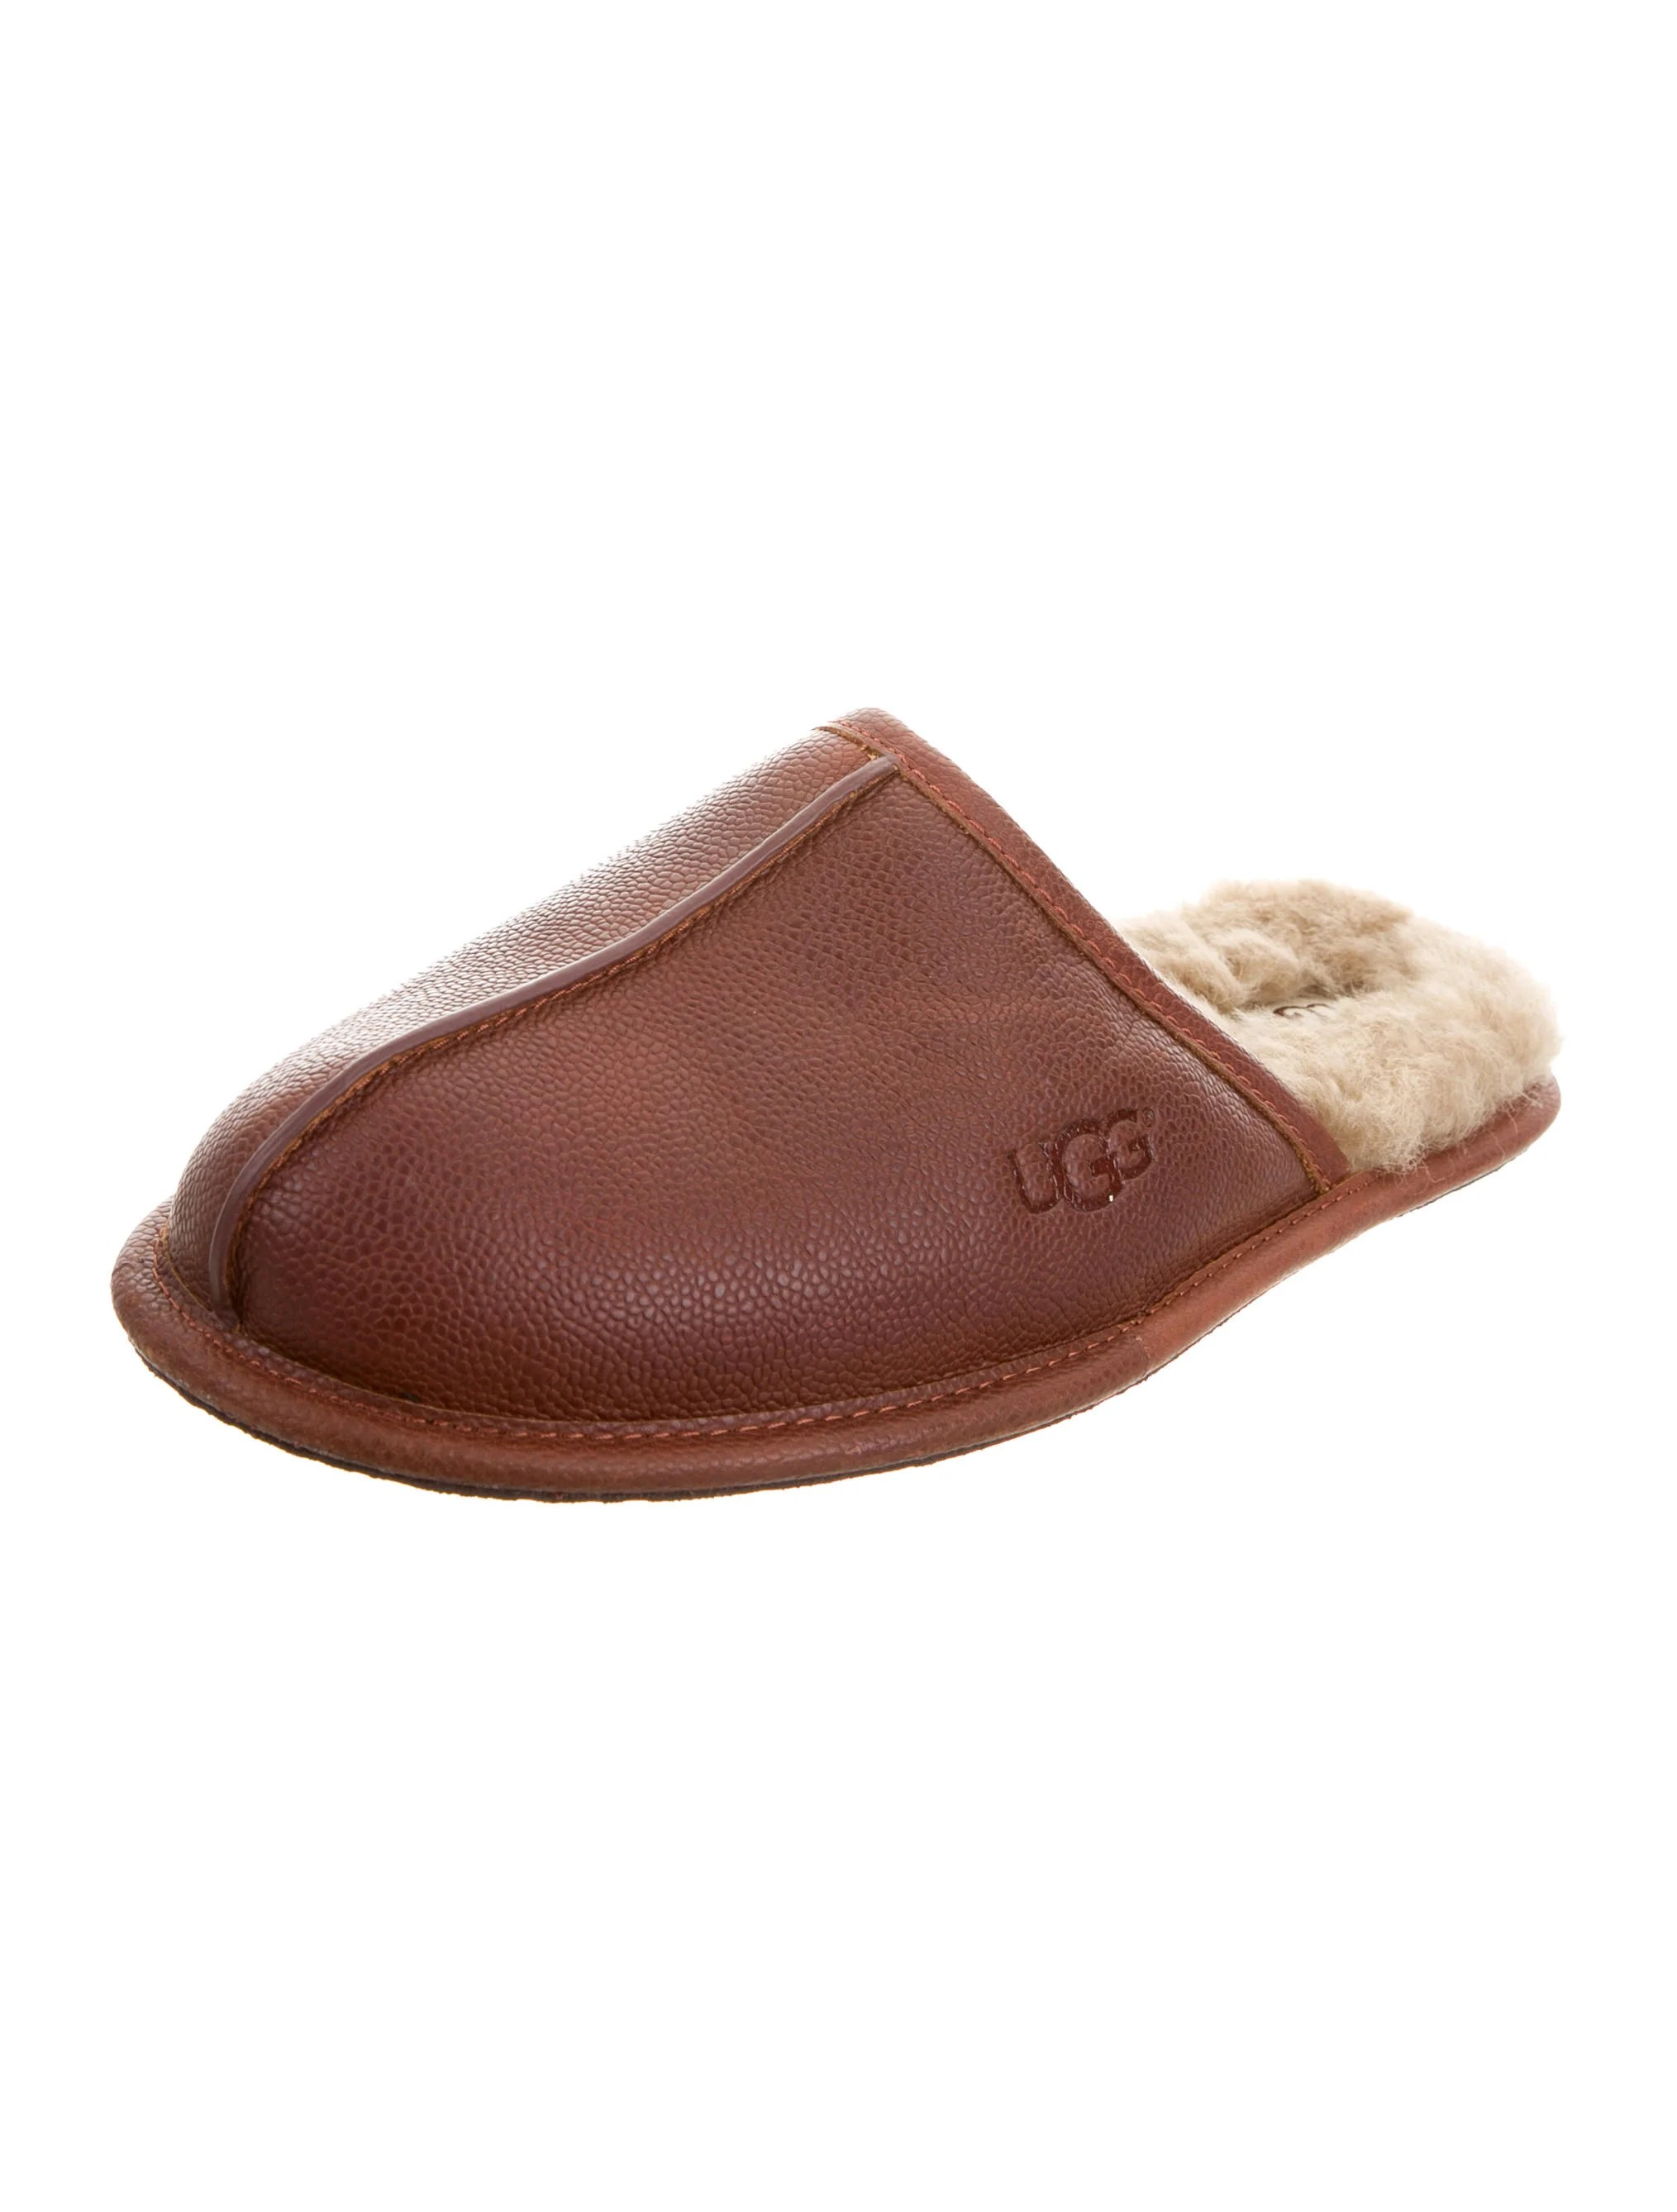 Slippers Australia Ugg Australia Shearling Lined Leather Slippers W Tags